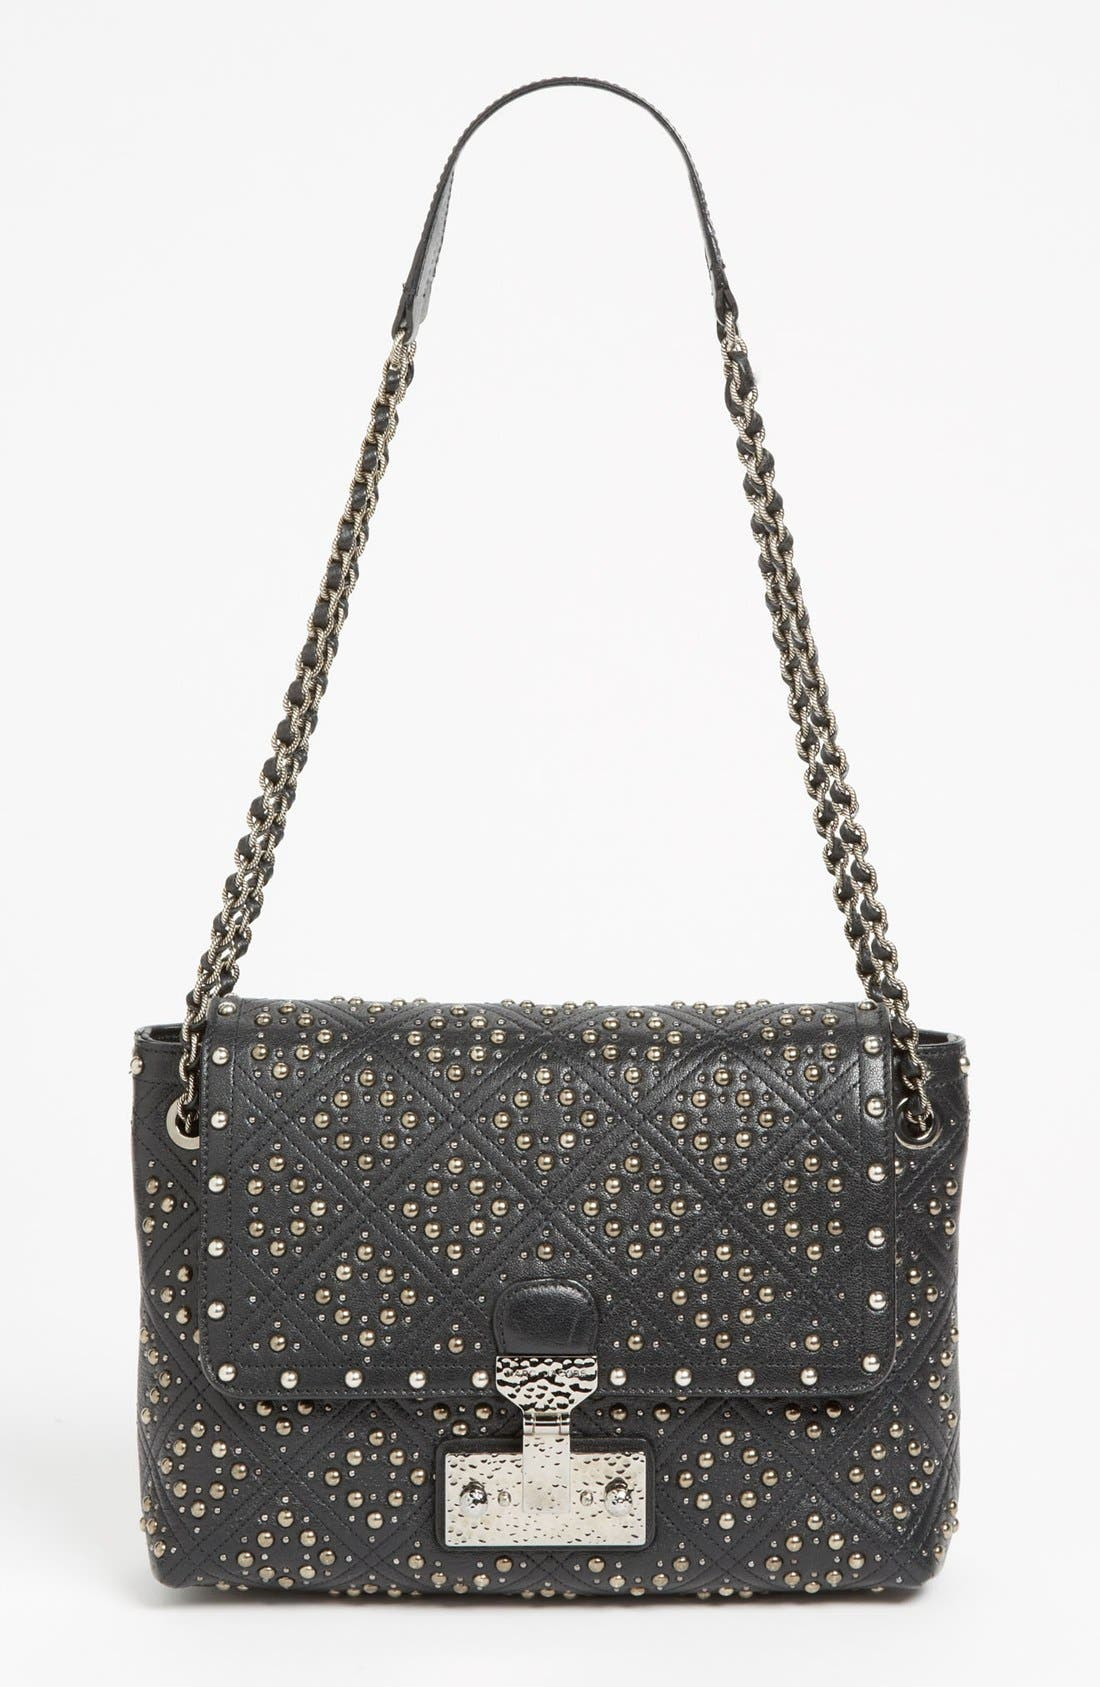 'Baroque Studs Single - Large' Leather Crossbody Bag,                             Main thumbnail 1, color,                             Black/Antique Silver